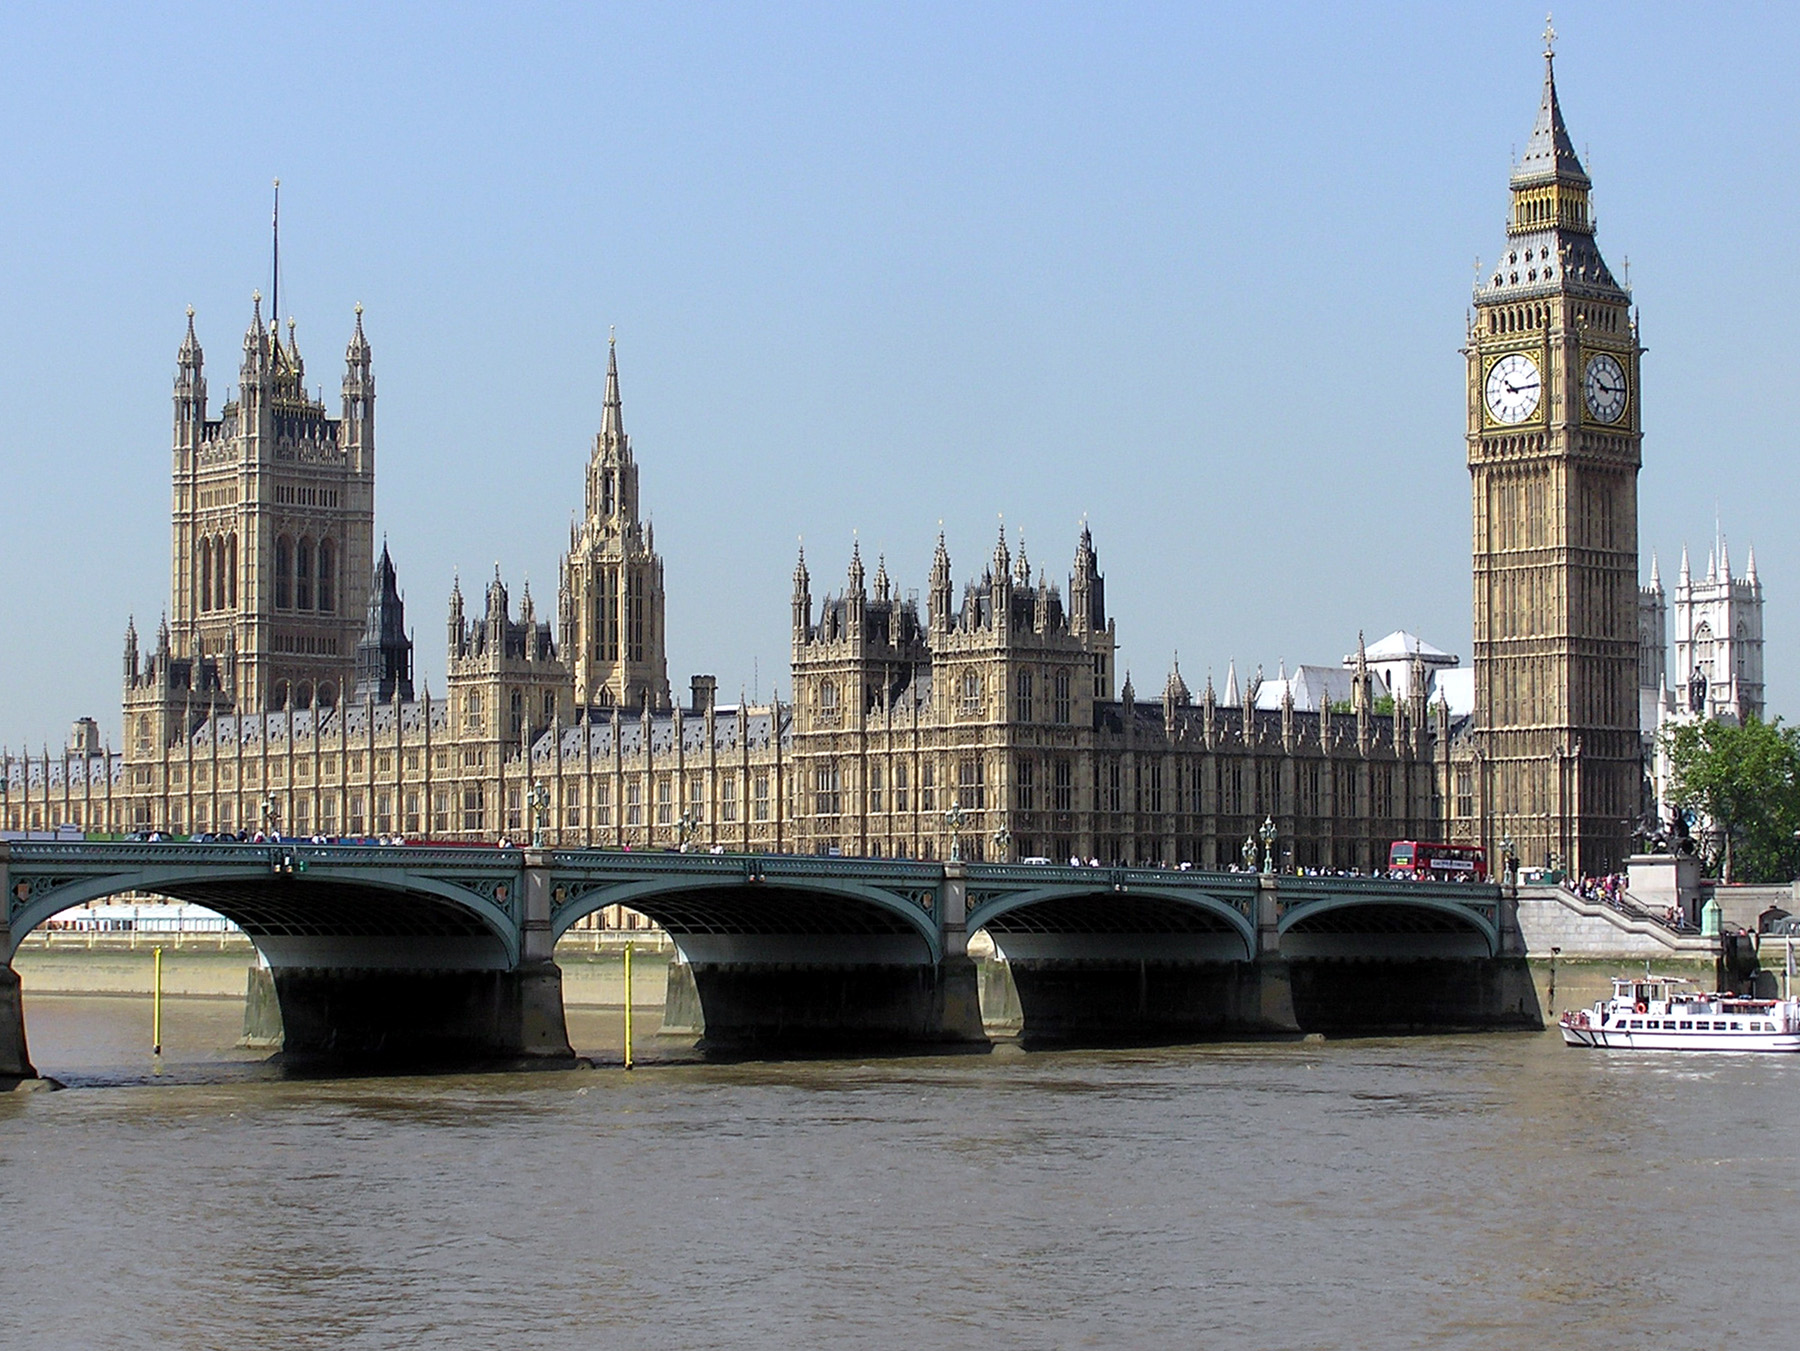 The Houses of Parliament, seen across Westminster Bridge